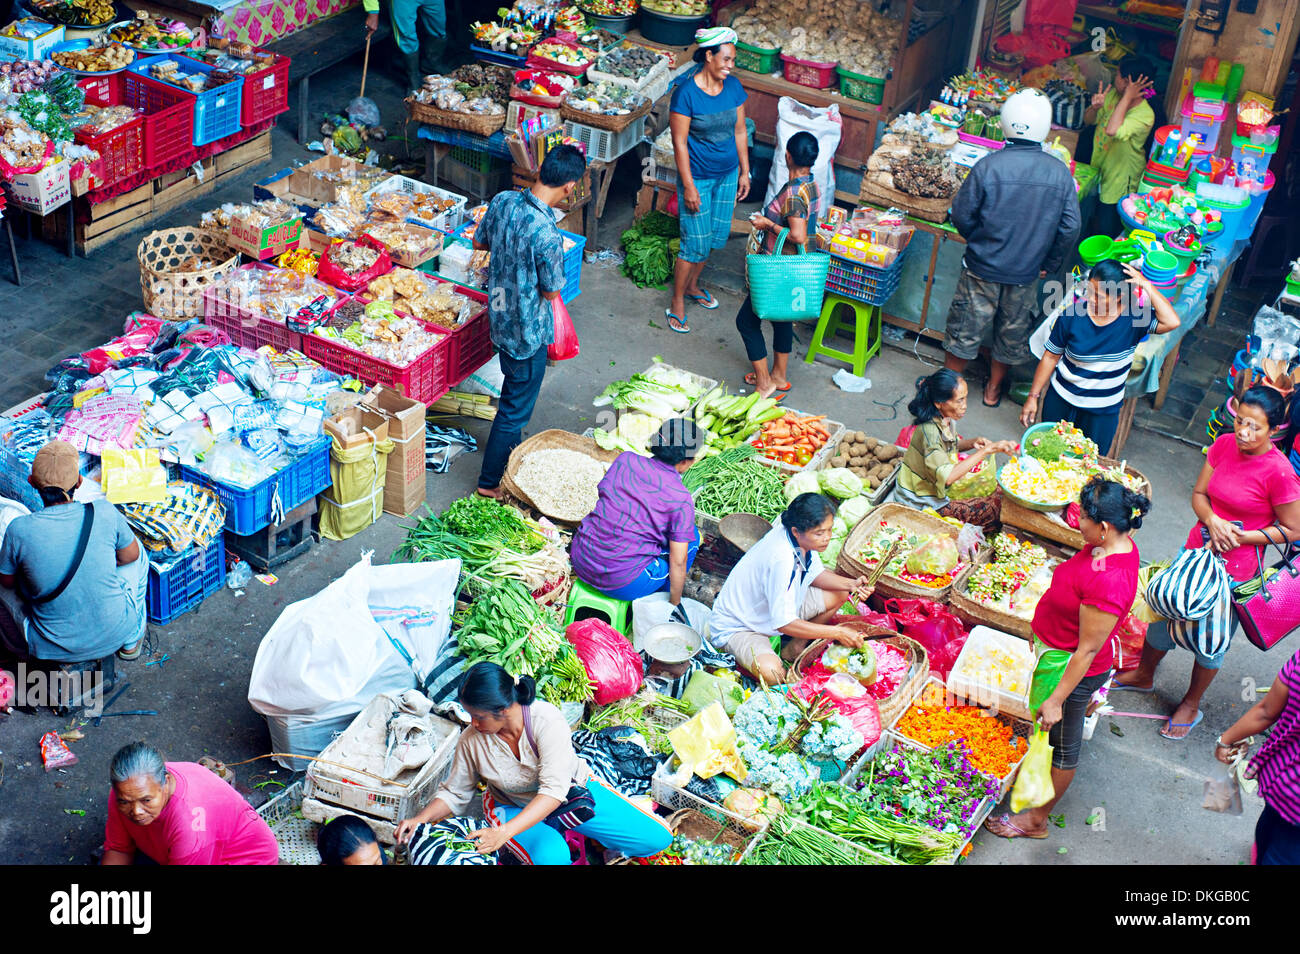 Commercial activities at Ubud market in Bali, Indonesia - Stock Image